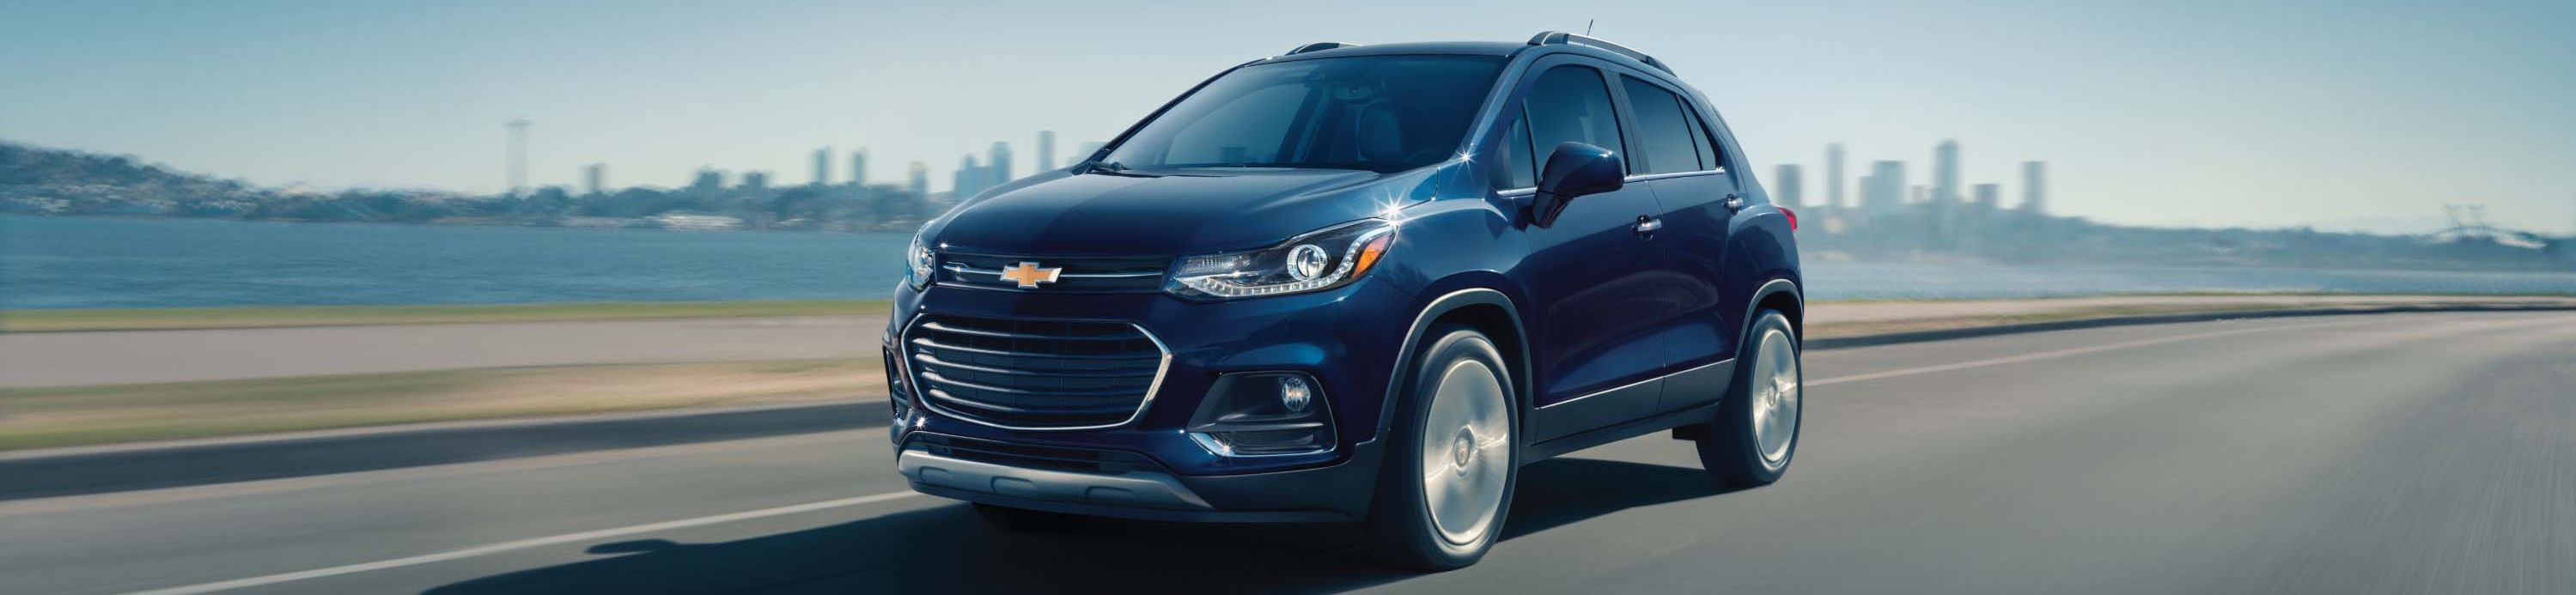 2019 Chevrolet Trax for Sale near Merrillville, IN